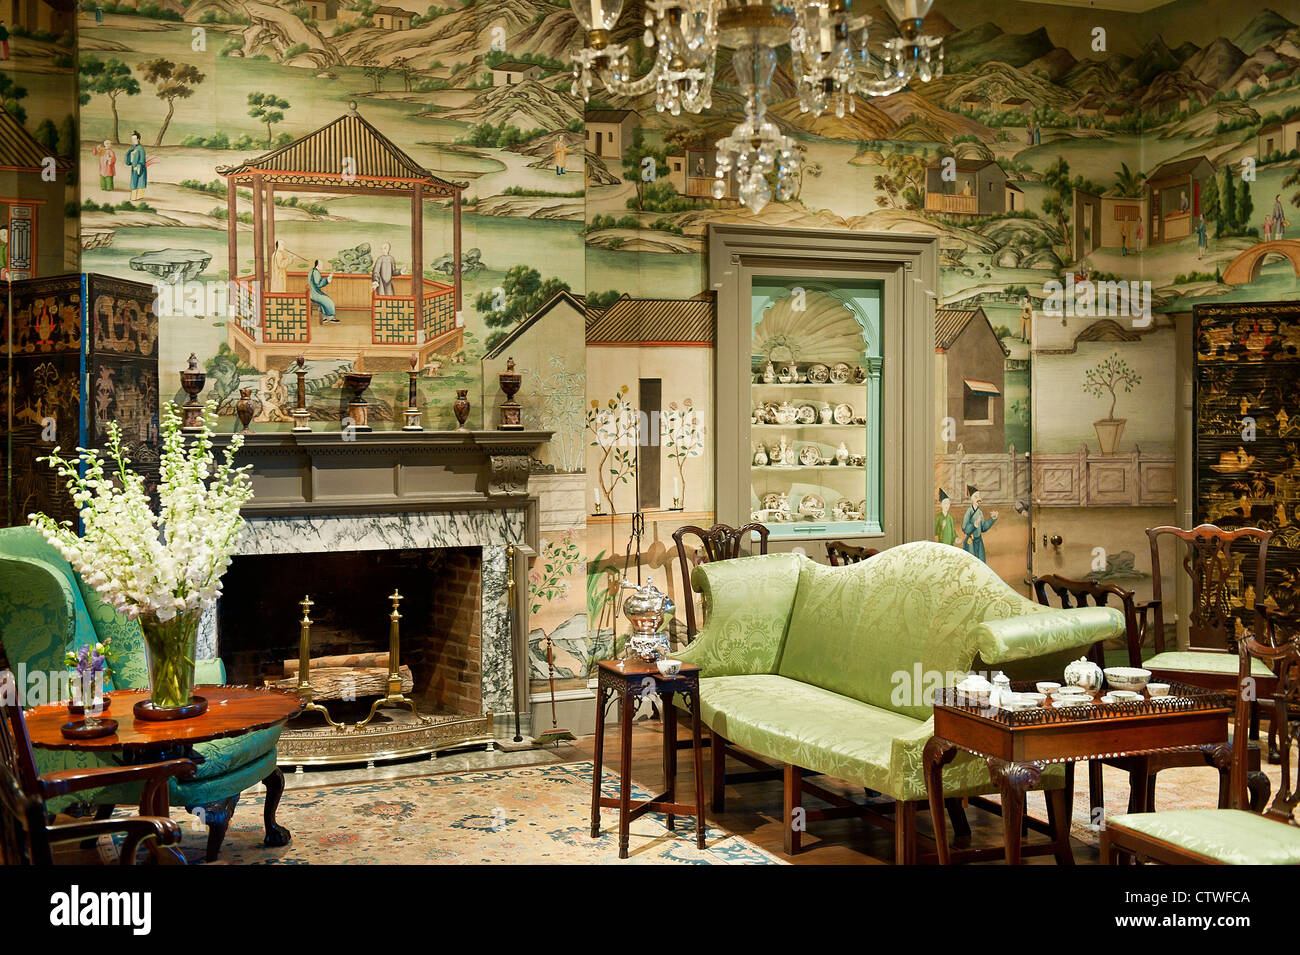 Winterthur decorative Arts Museum and Gardens, Delaware, USA - Stock Image